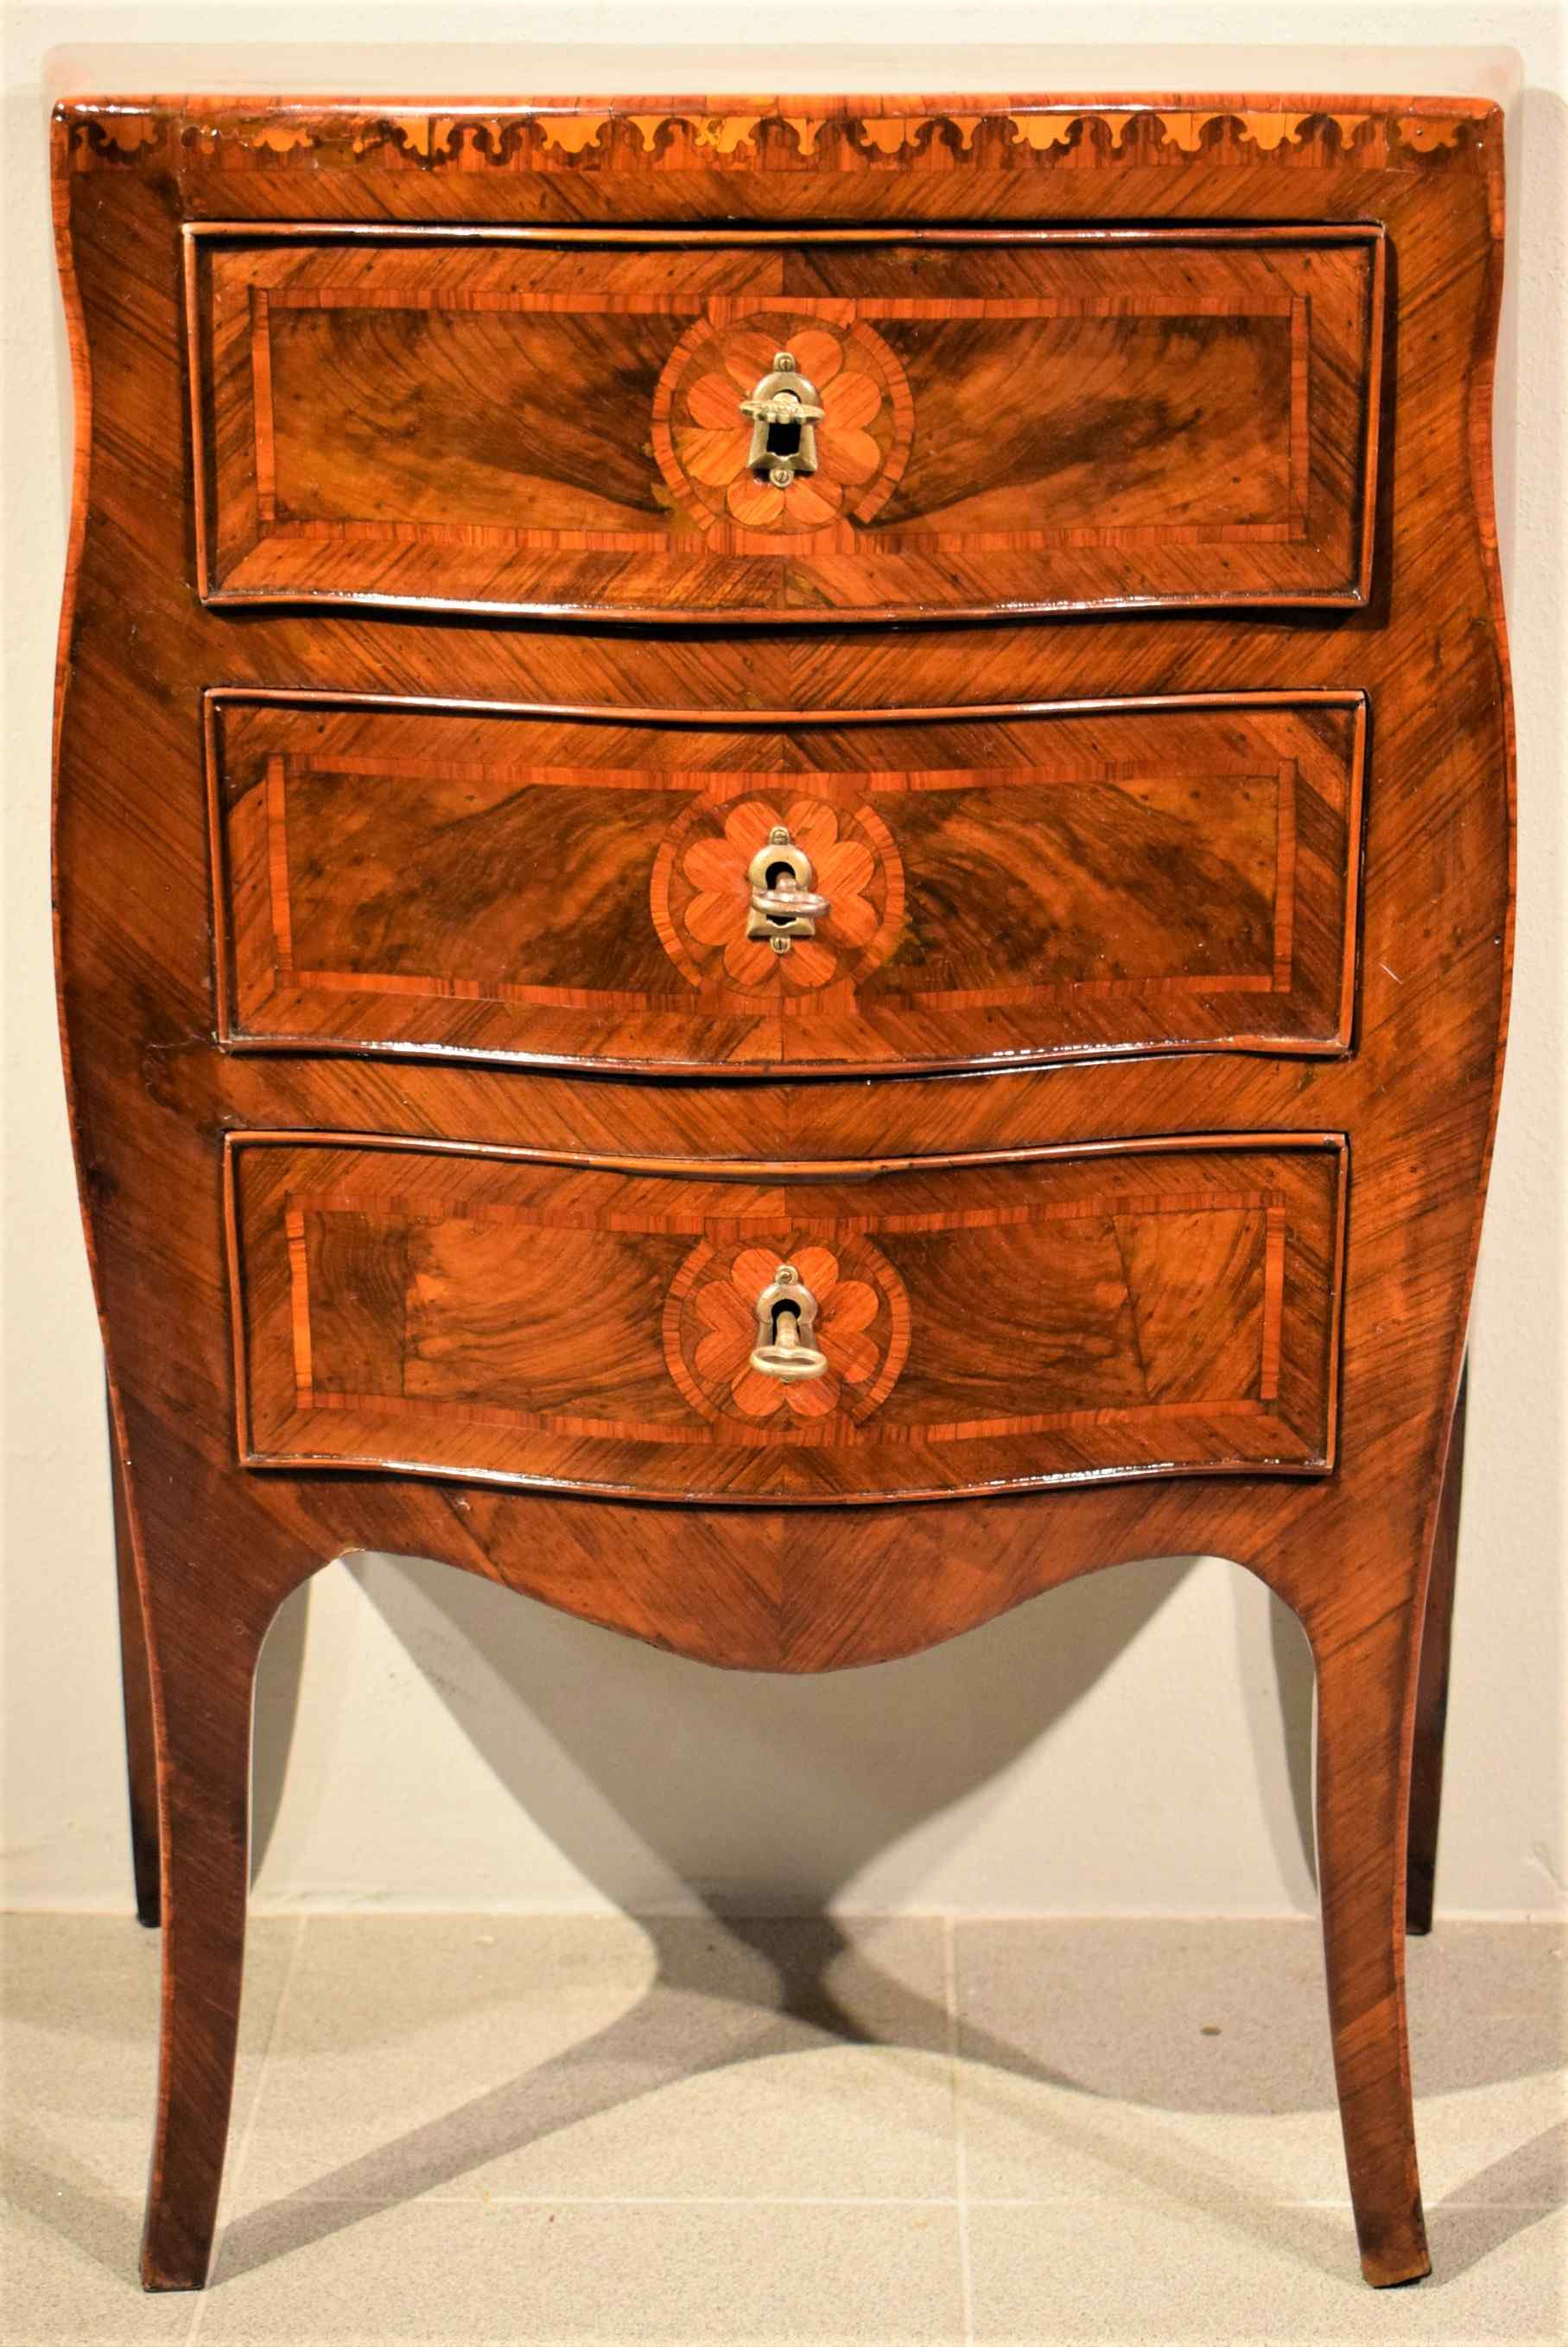 Small Louis XV chest of drawers moved and inlaid, 1750 c.